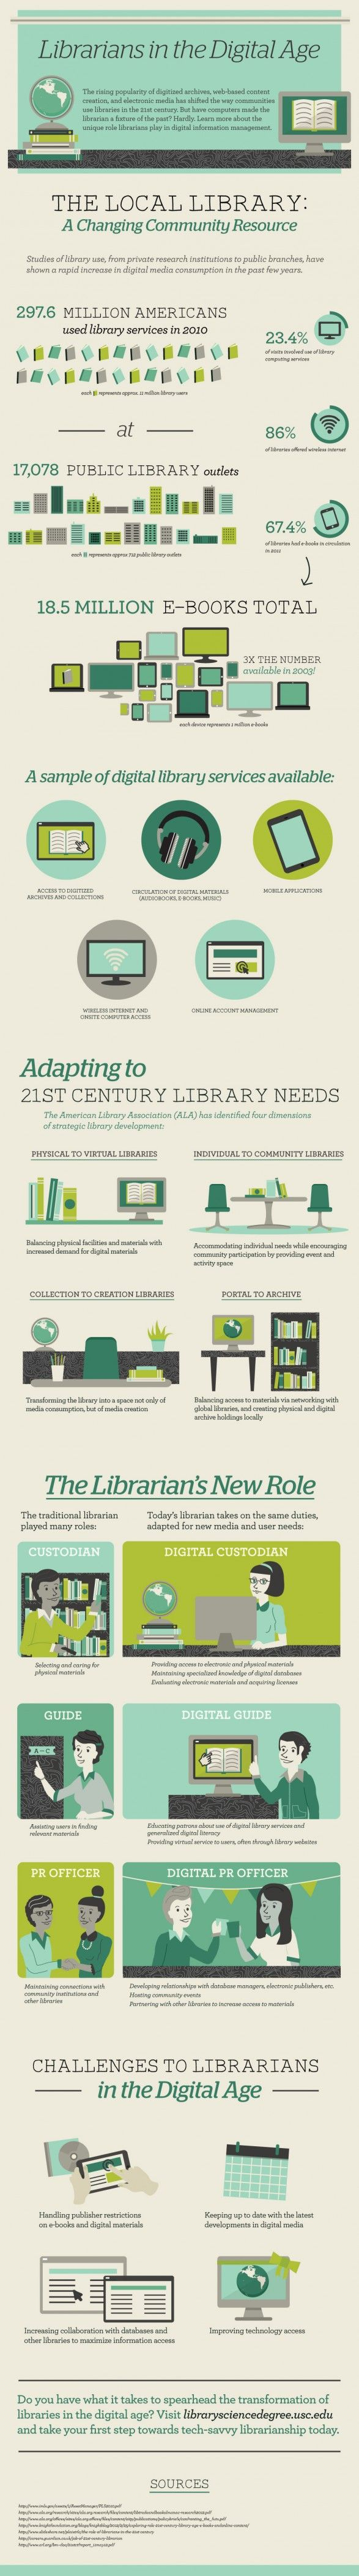 A Goodgraphic Explaining The Role Of Librarians In The Digital Age